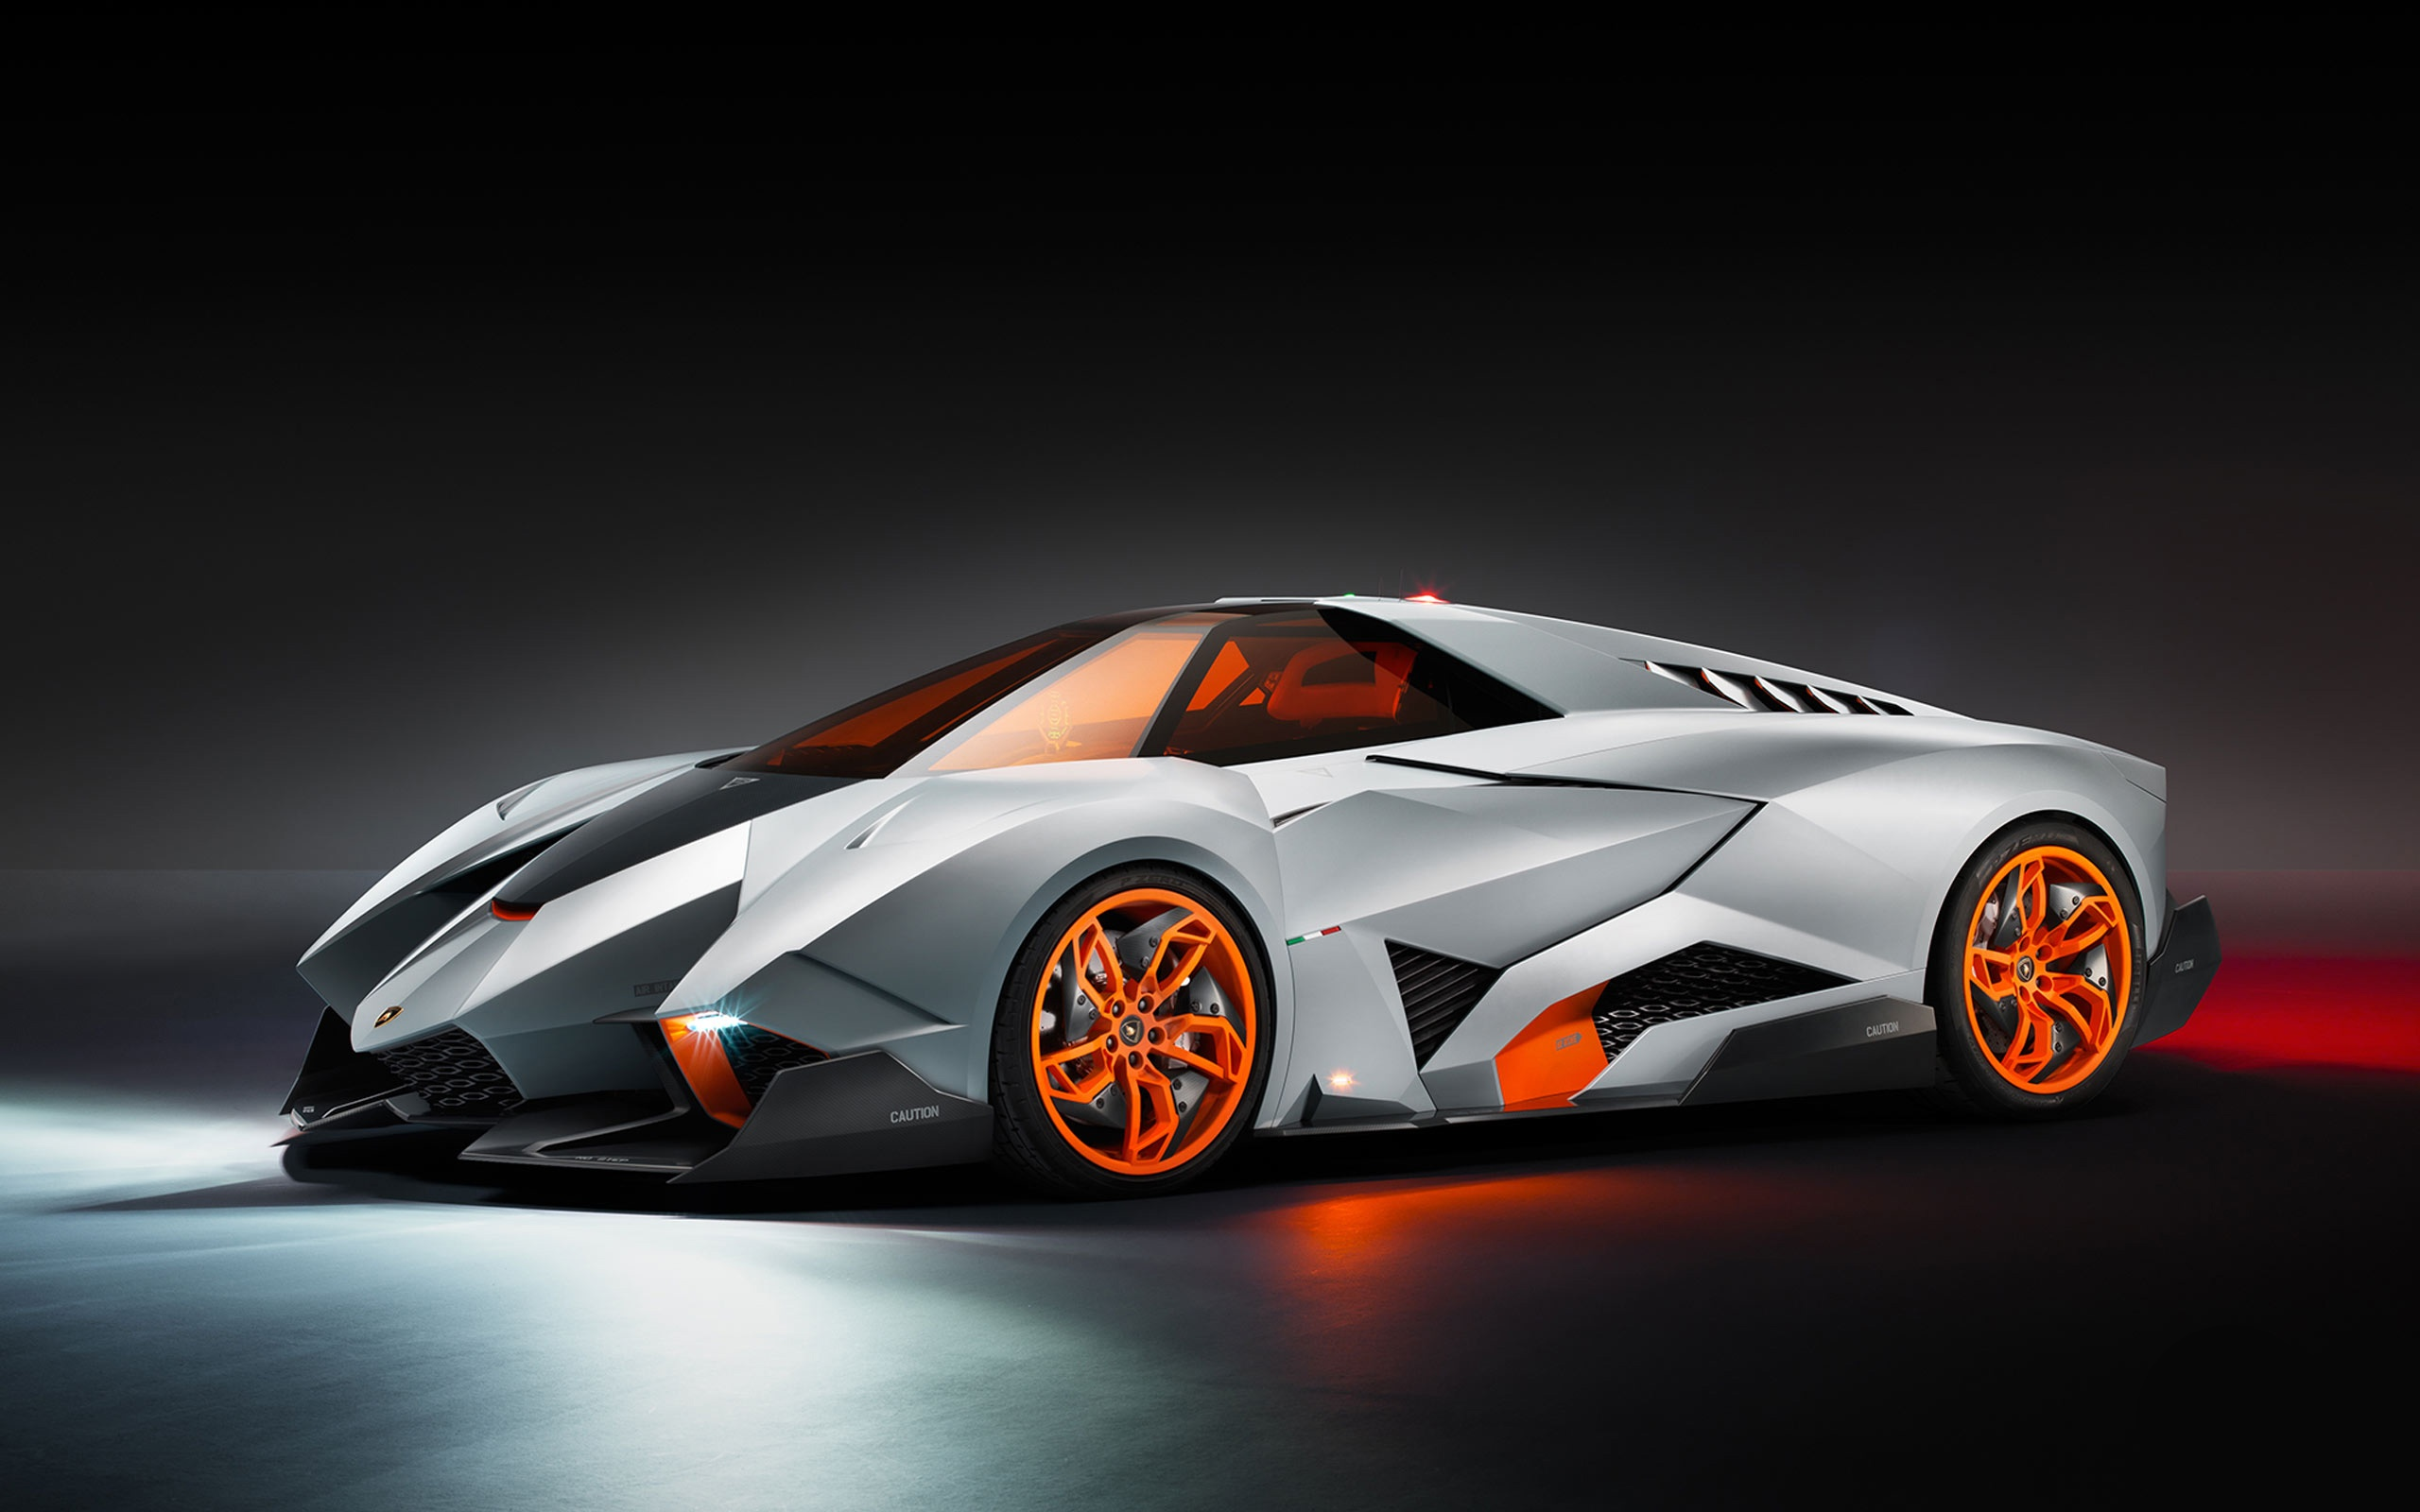 Lamborghini Egoista computer desktop wallpapers pictures 2560x1600